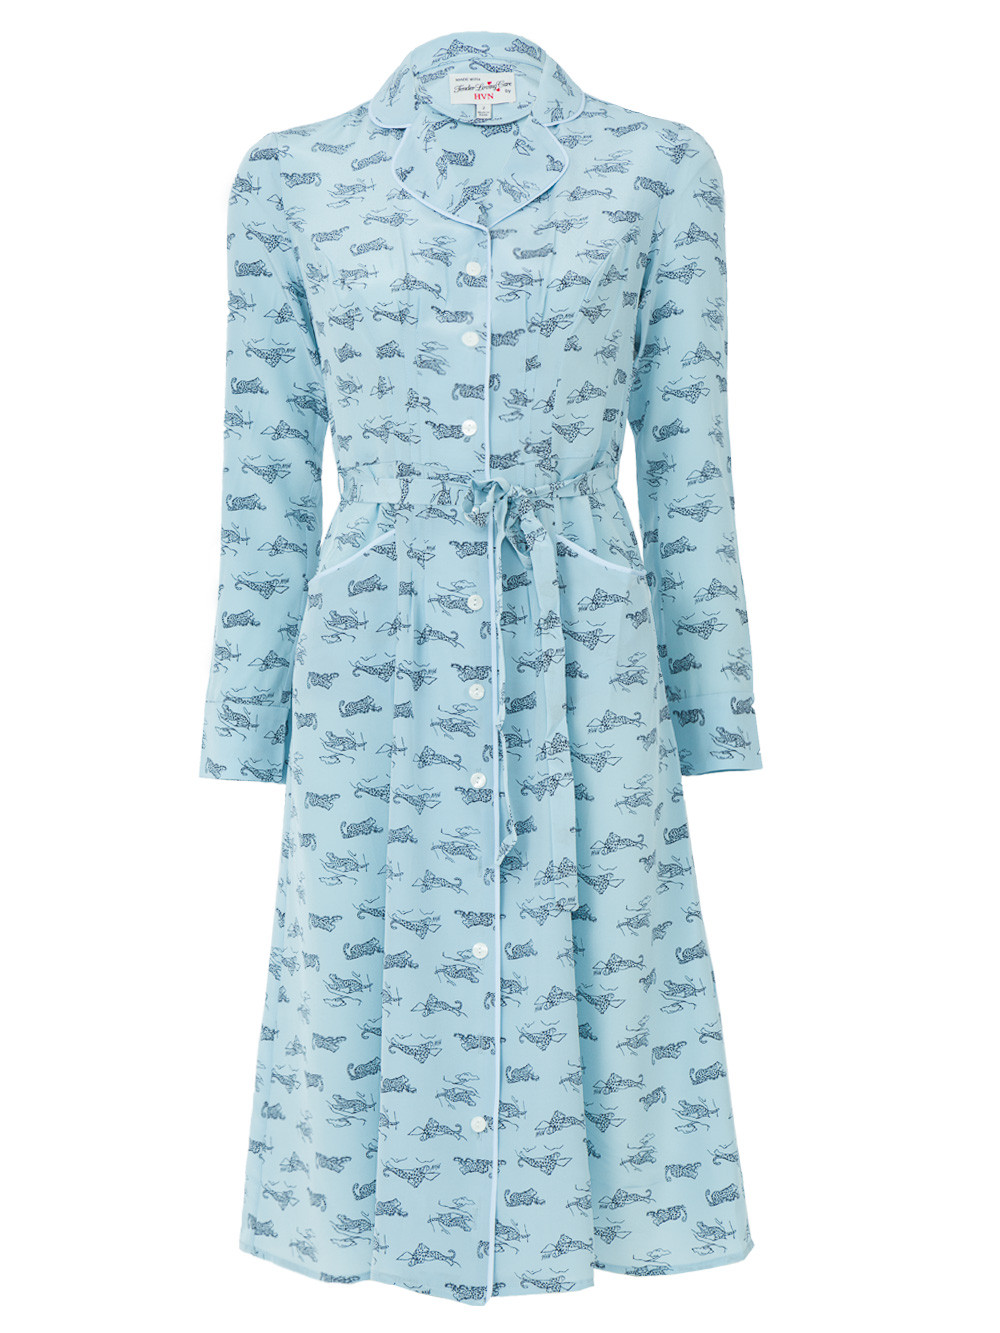 PALE BLUE SAFARI - SHOP NOW